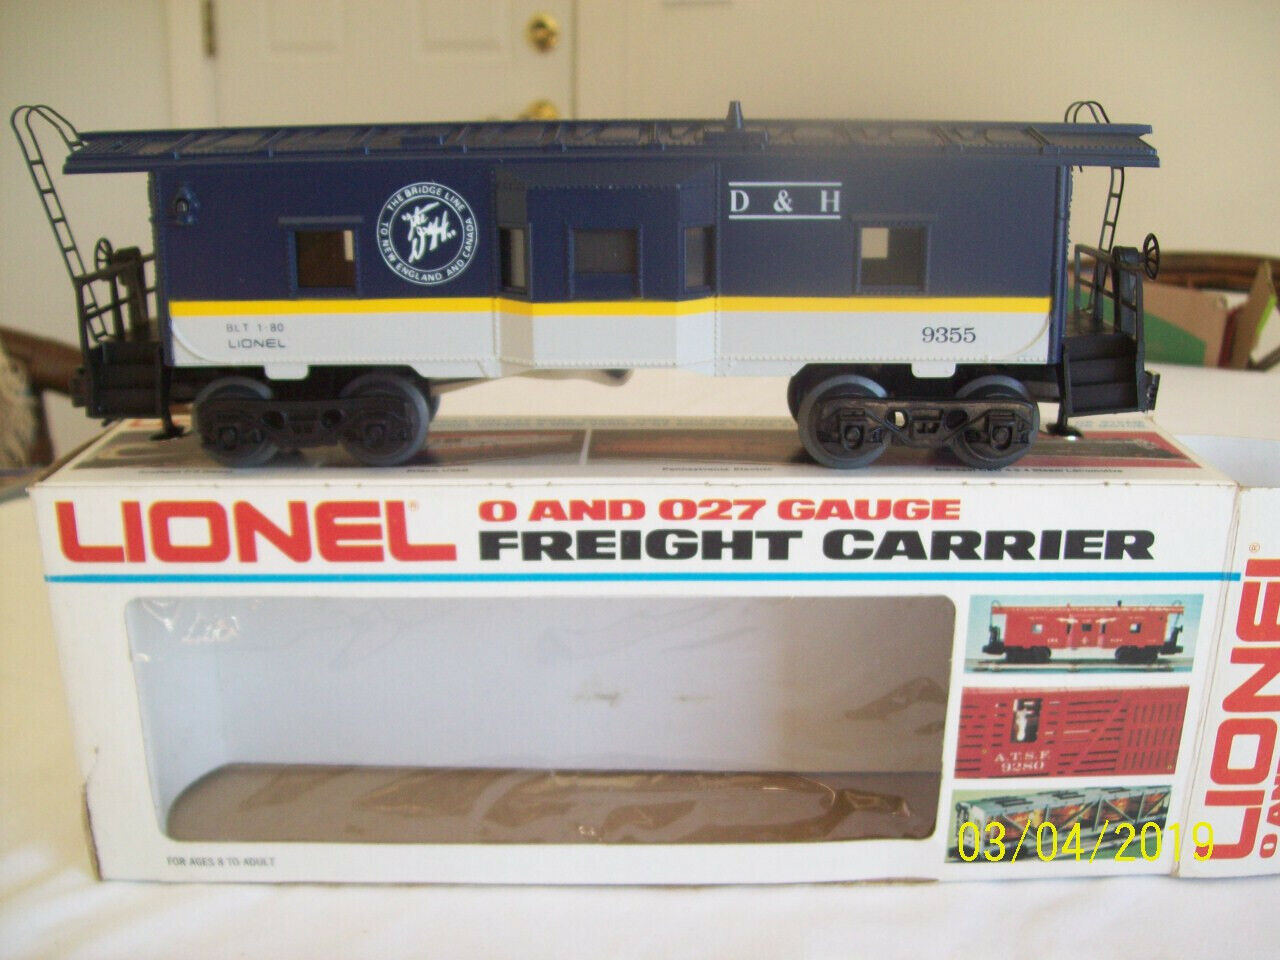 Lionel cabooses - D&H 6-9355 & C&NW 6-16533 (LOT of 2)